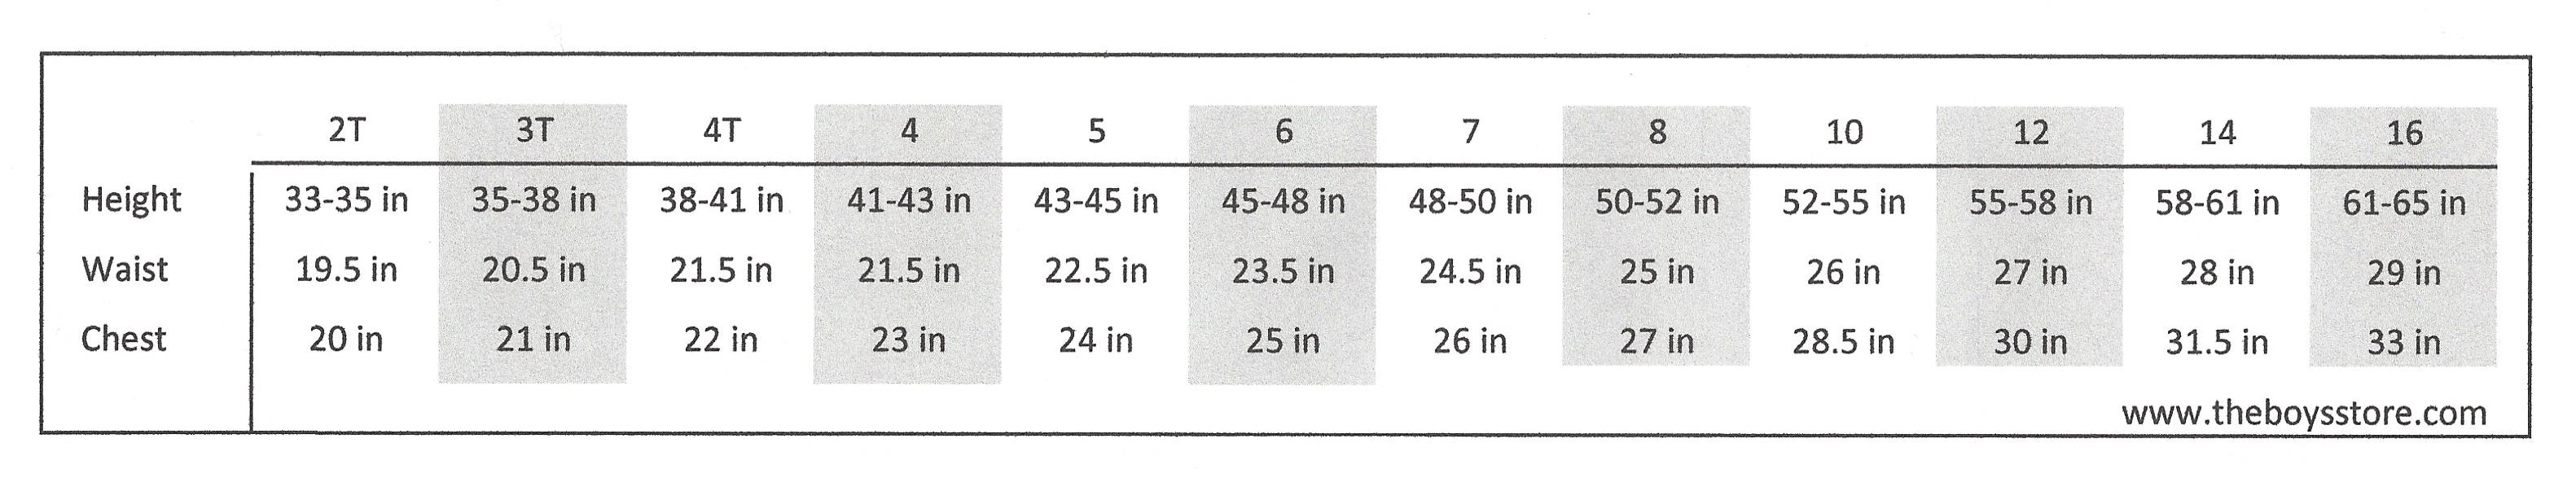 City Threads Sizing Chart